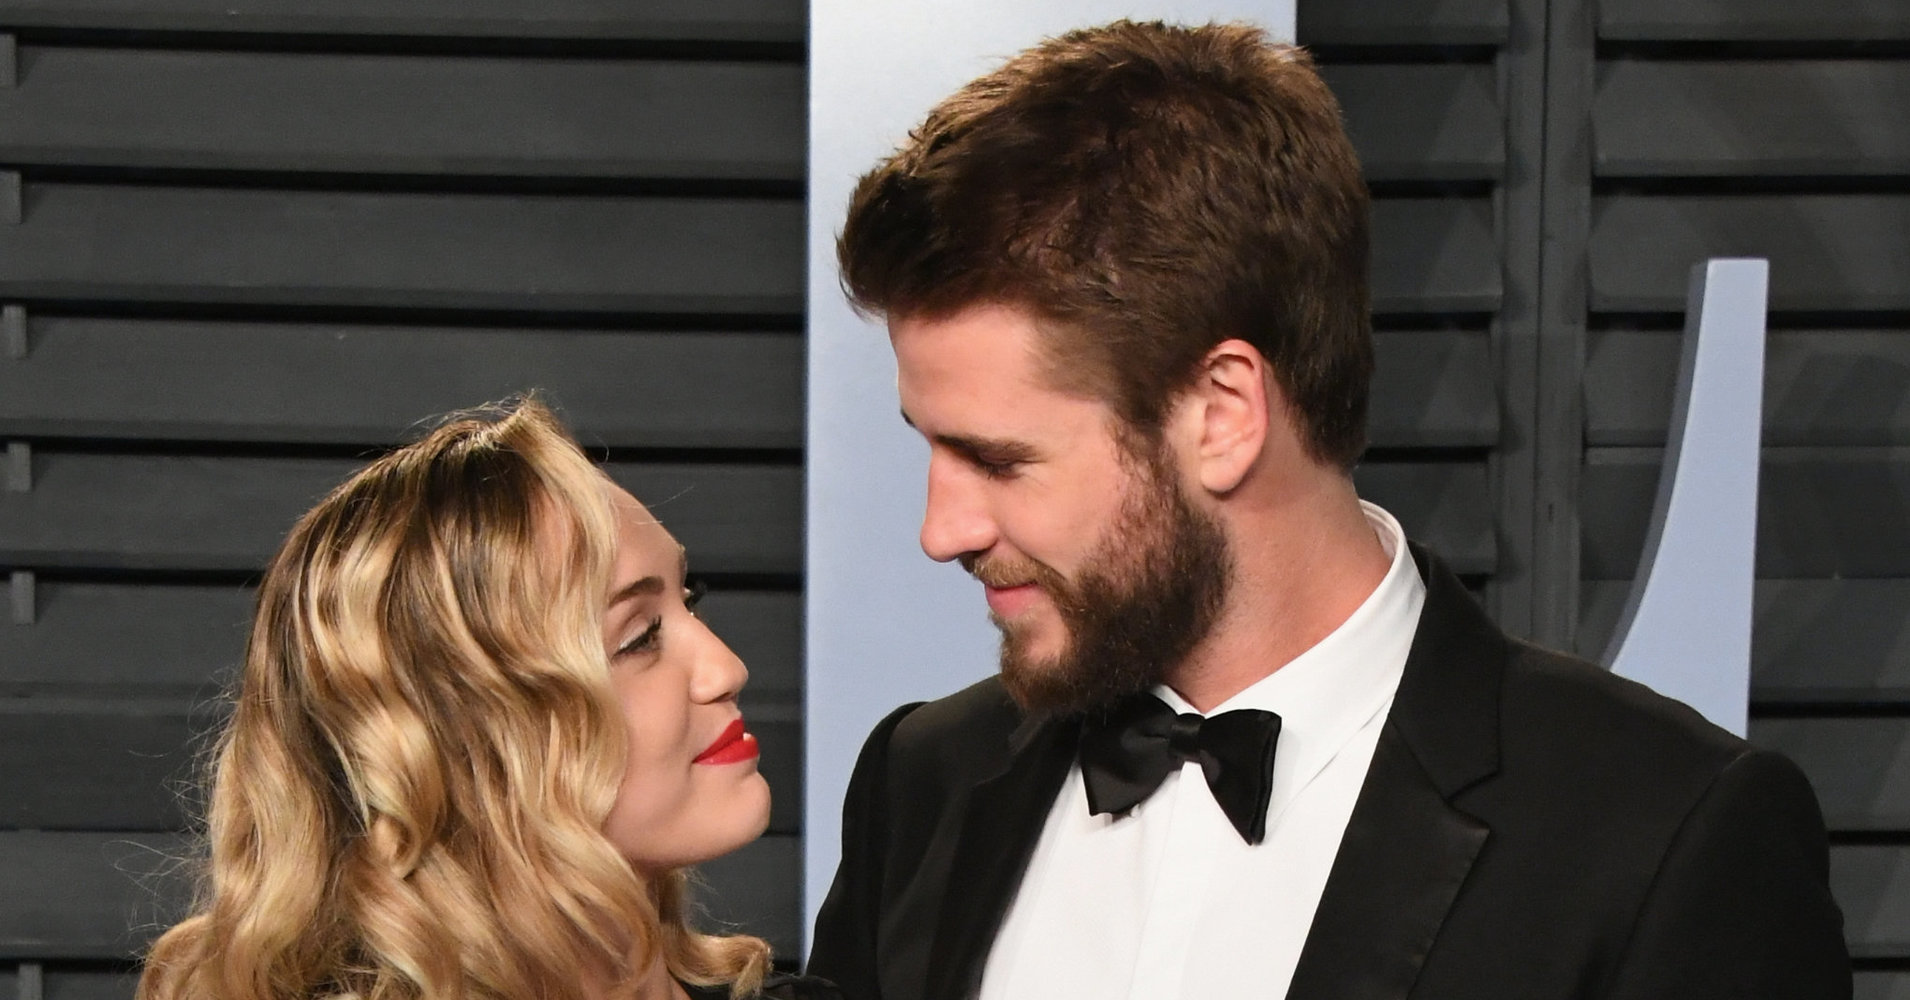 Miley Cyrus And Liam Hemsworth Looked So In Love At The Vanity Fair Oscar Bash